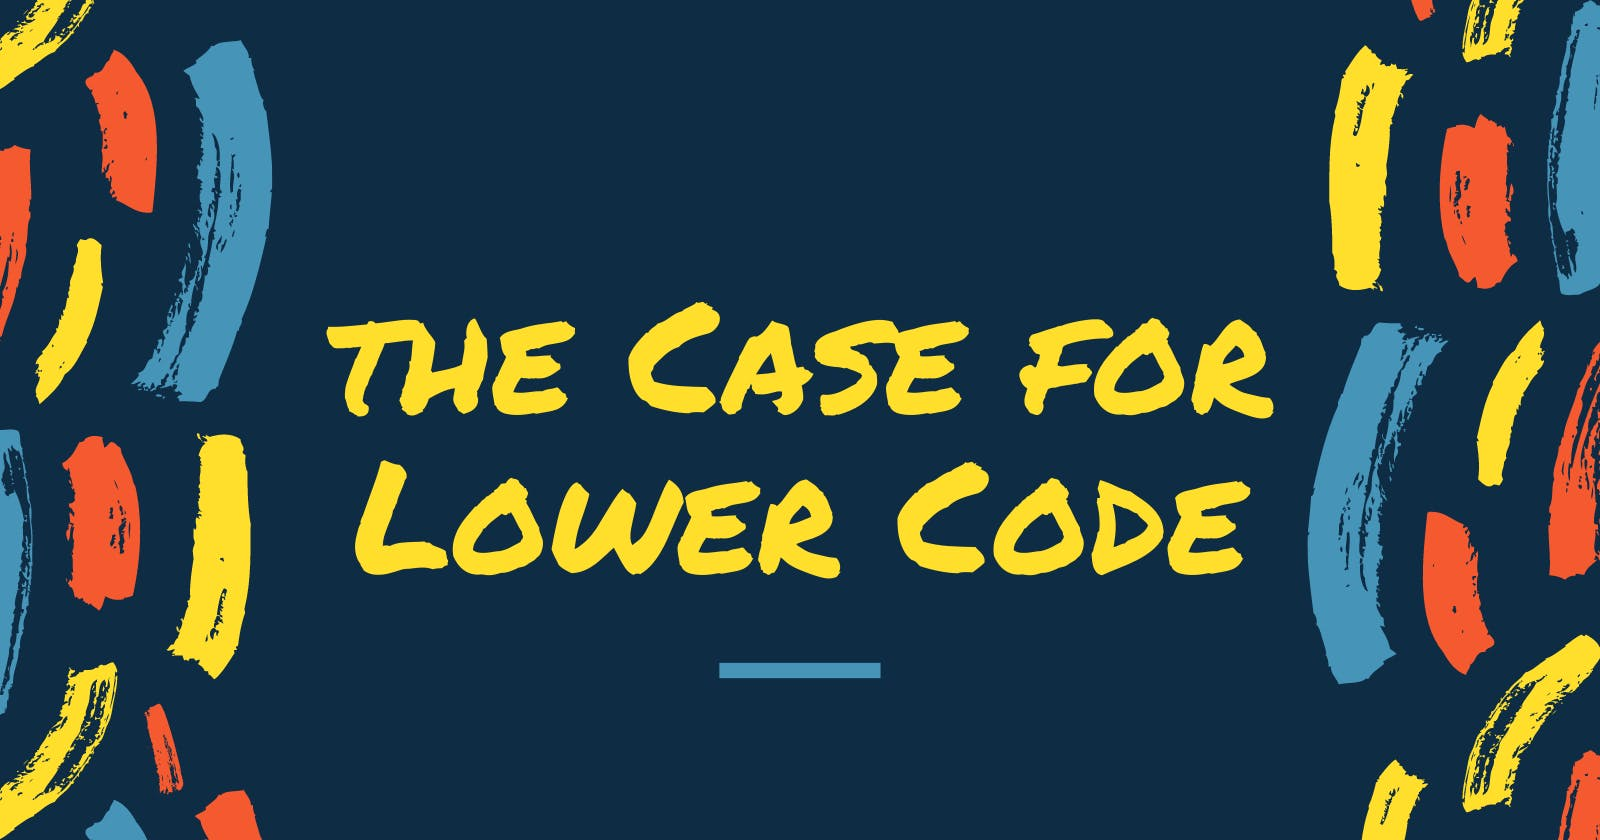 The Case for Lower Code